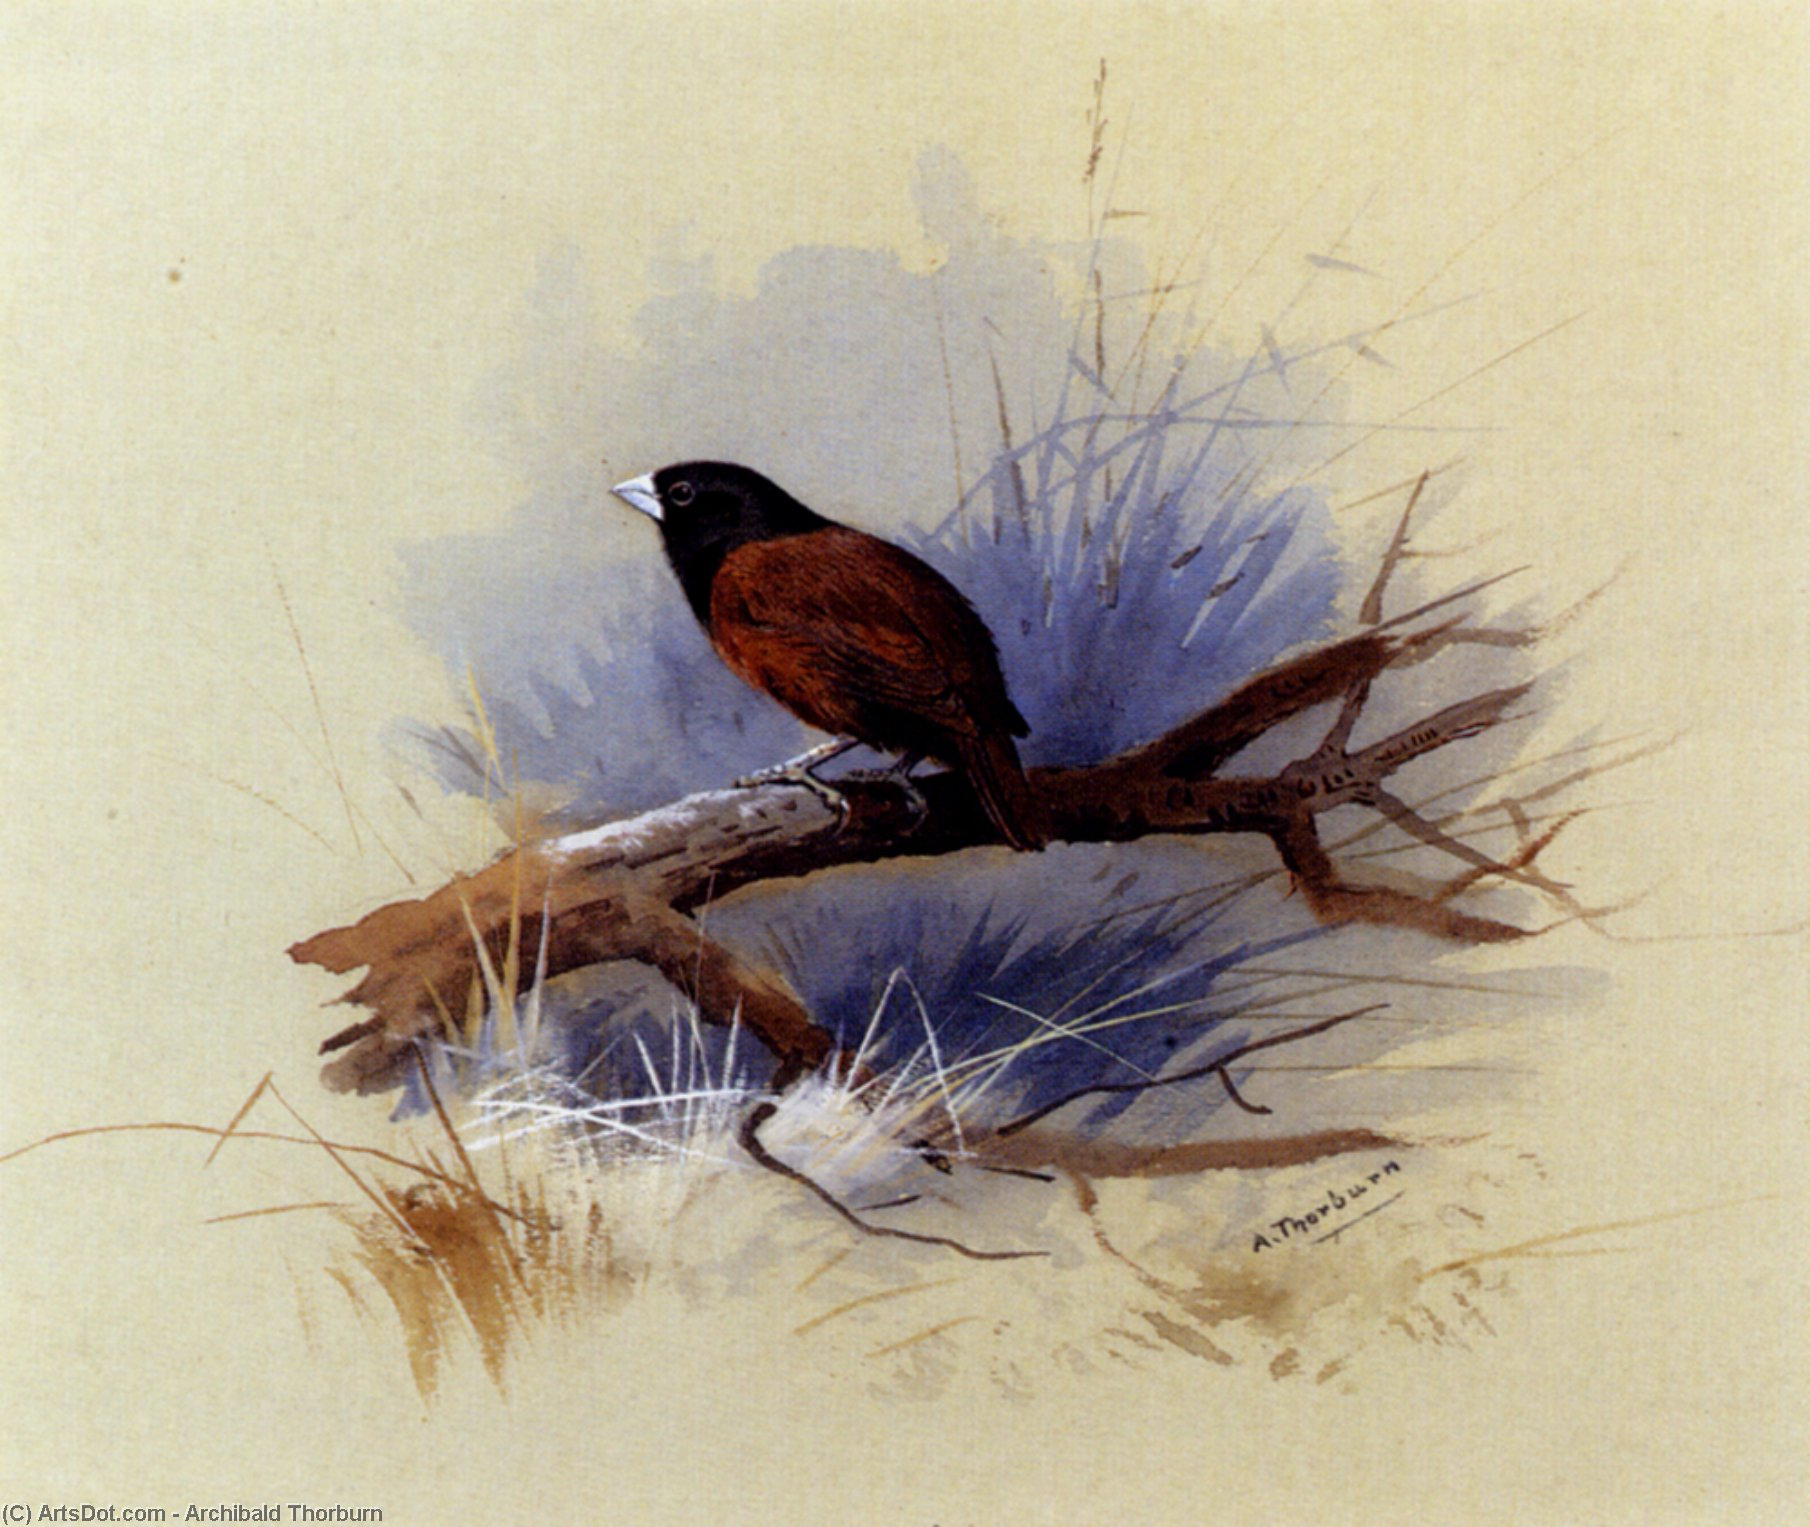 Un Nepalese Black-Headed Suora nel ramo di un albero, acquerello di Archibald Thorburn (1860-1935, United Kingdom)